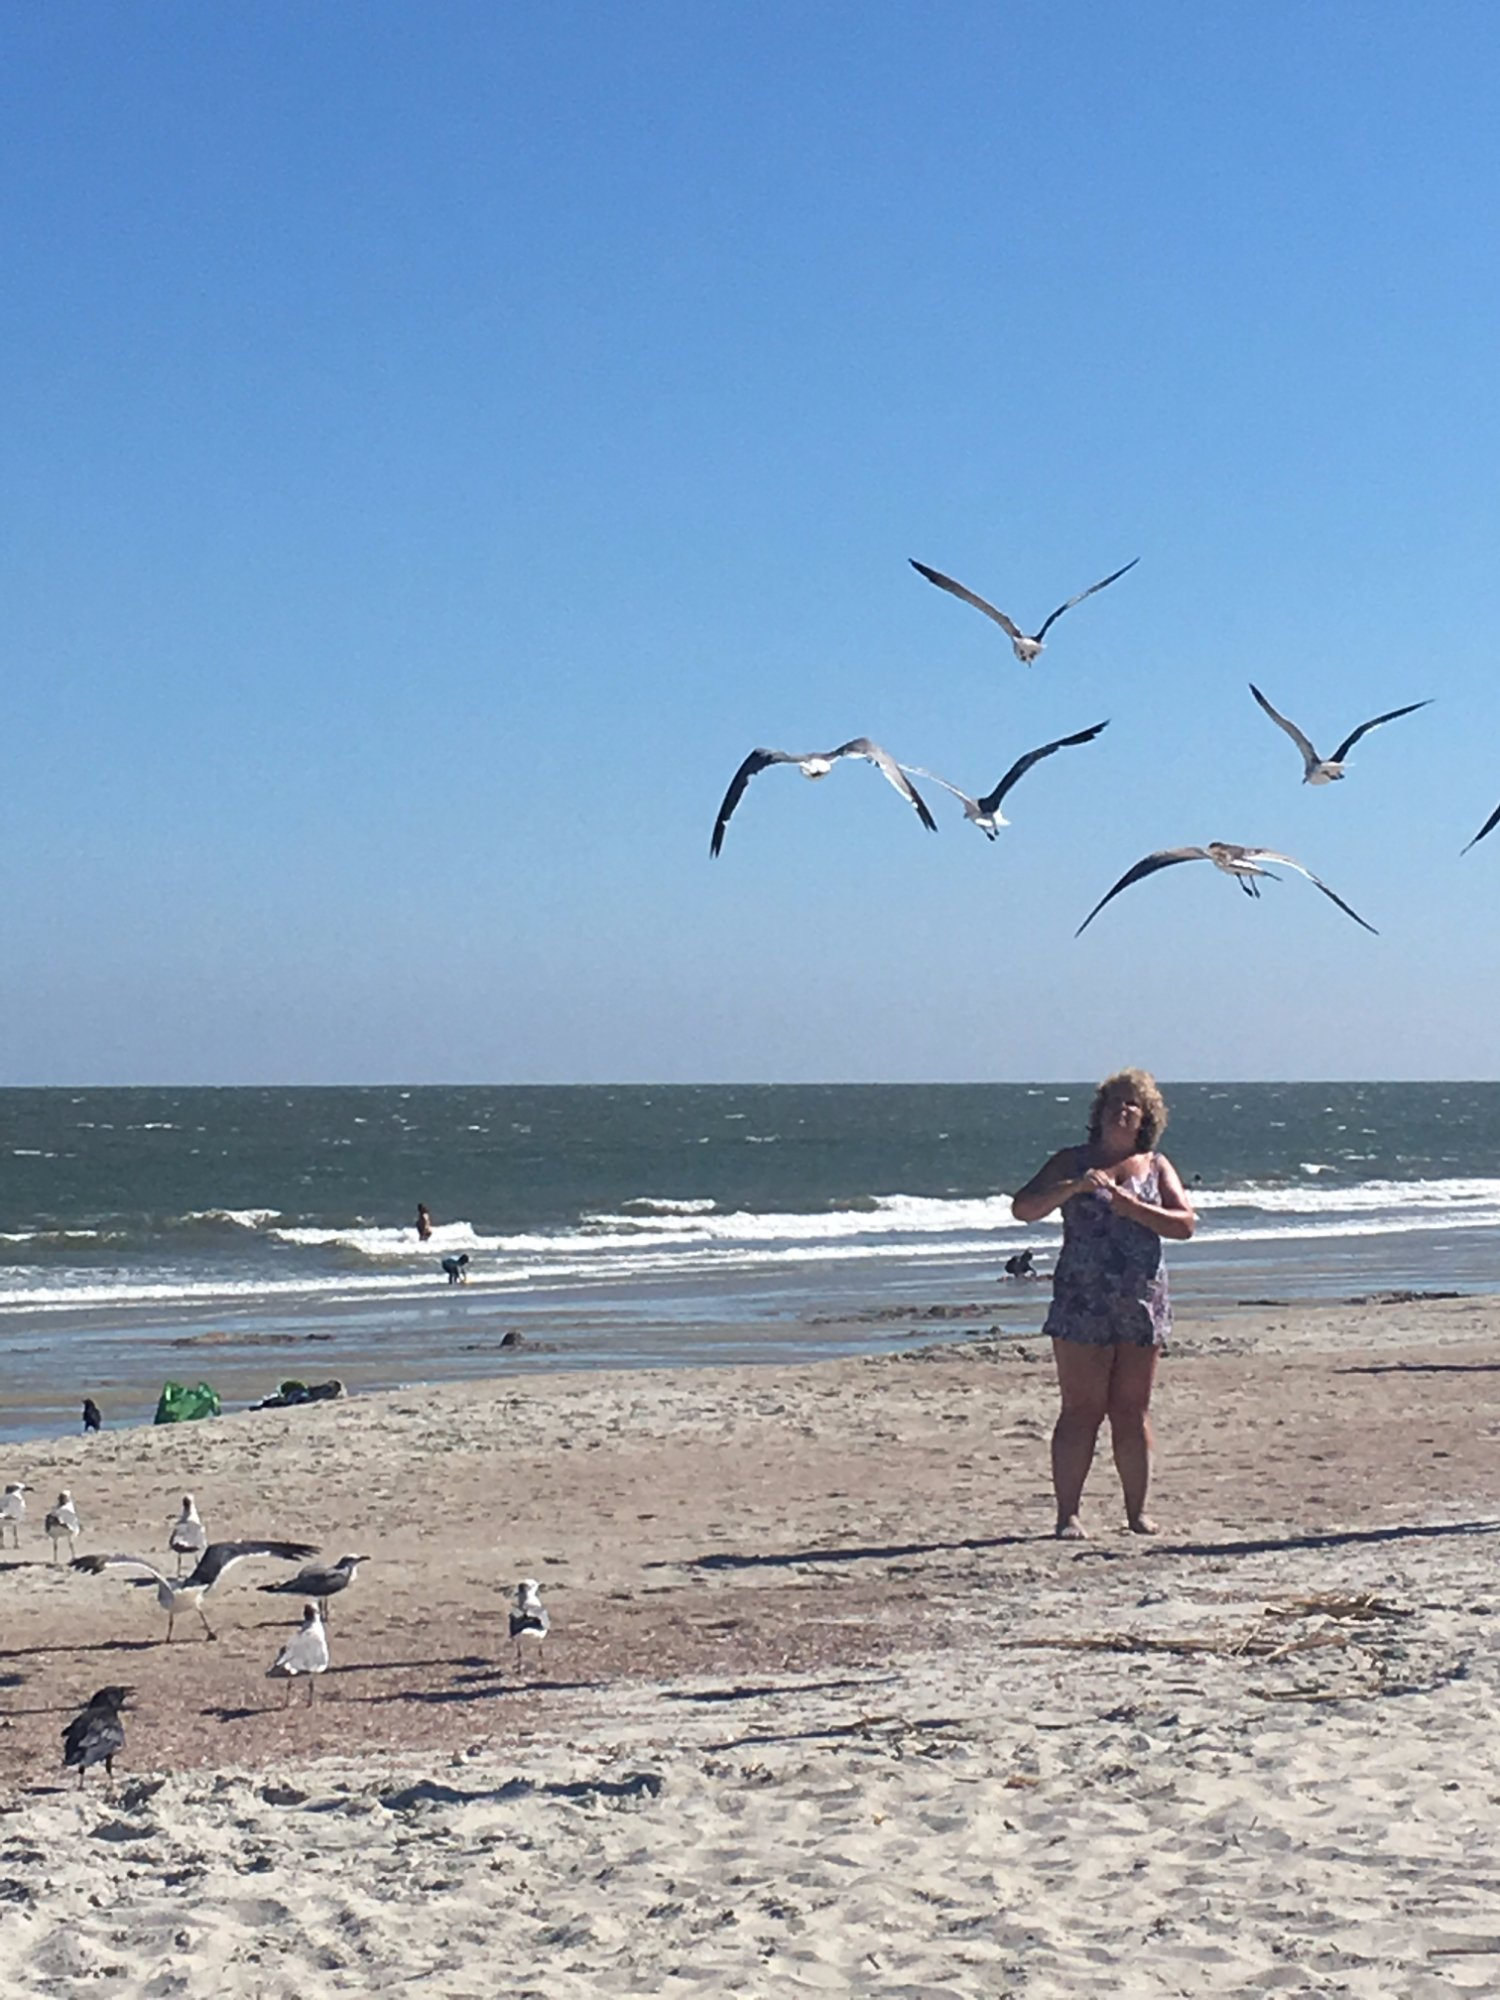 Caught this tourist feeding the birds at the Beach. This is a great attraction for many people.